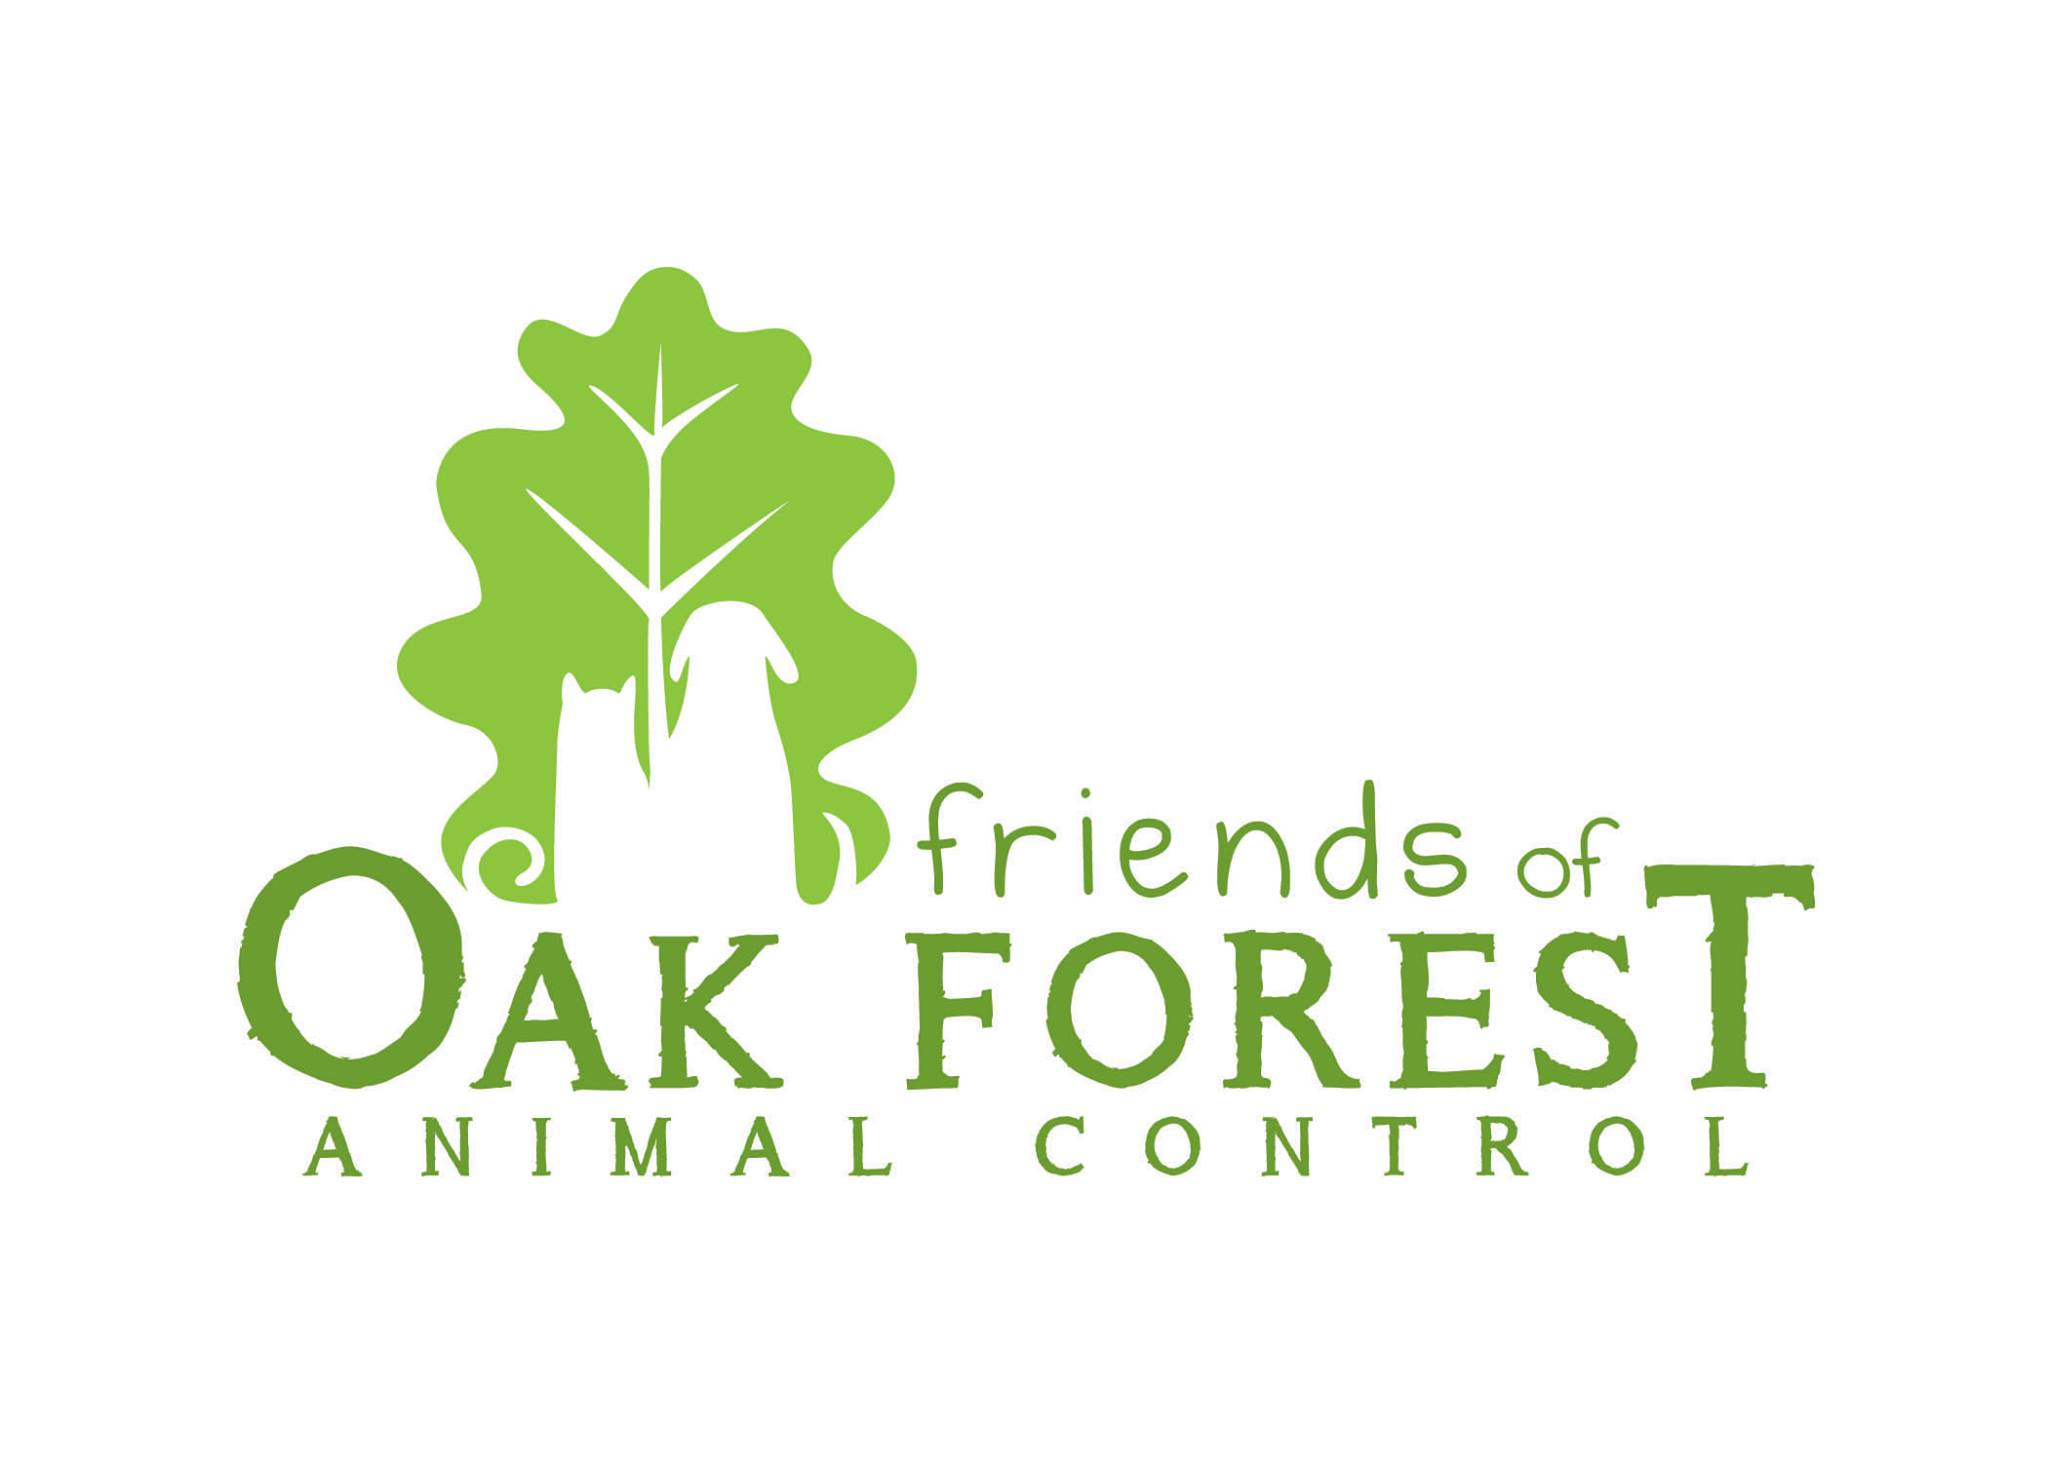 Friends of OF Animal Control